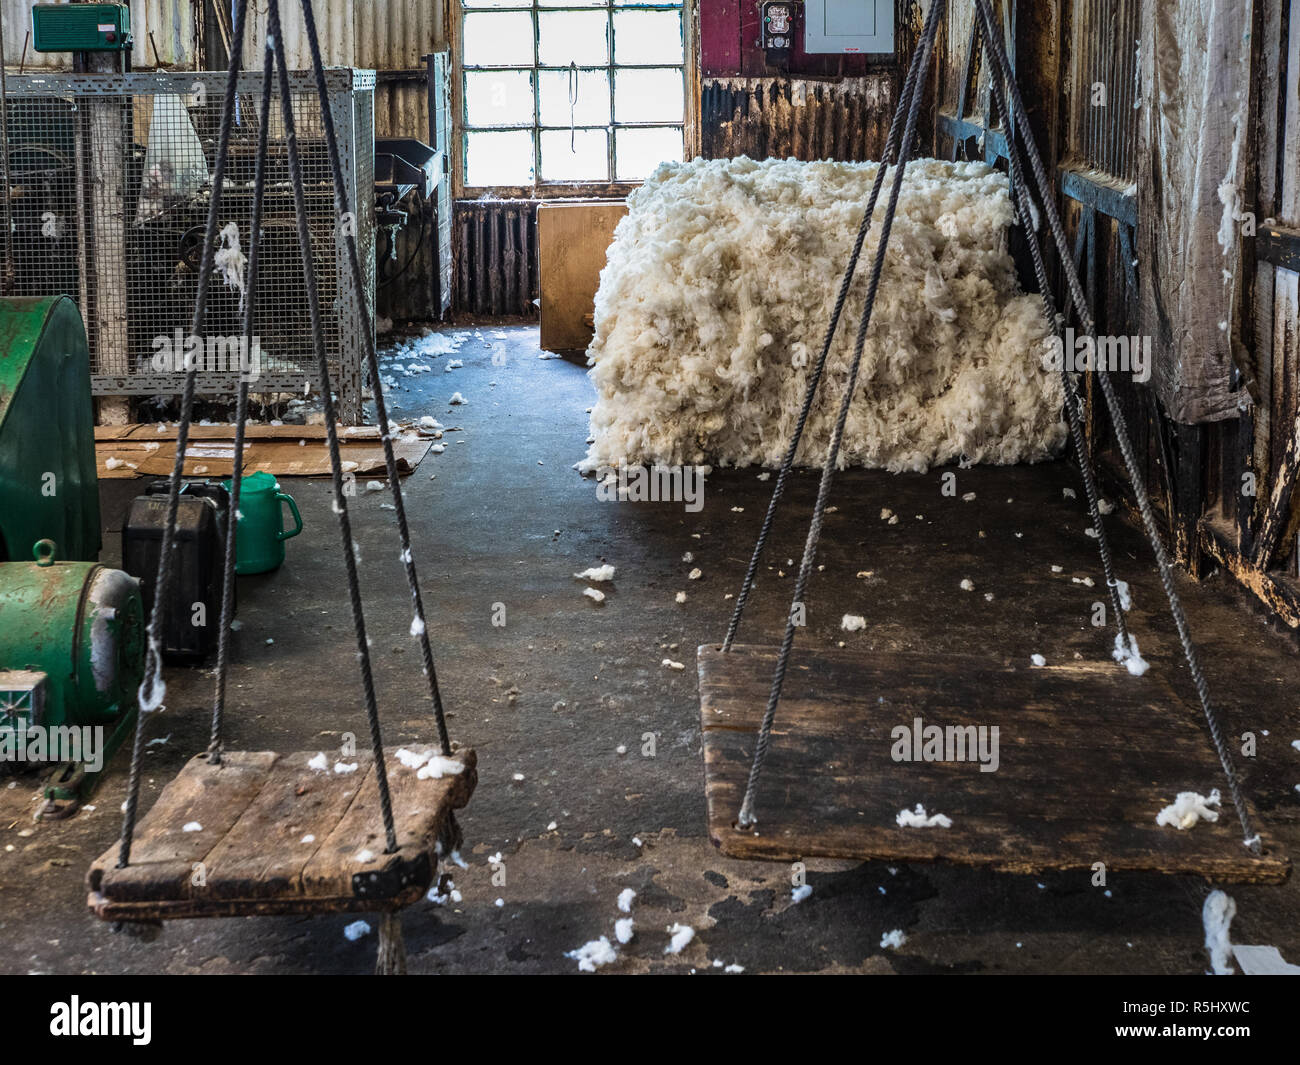 Wool Weighing Scales - Wool Bale Weighing Scales at the Trefriw Woolen Mills in Trefriw North Wales - Stock Image